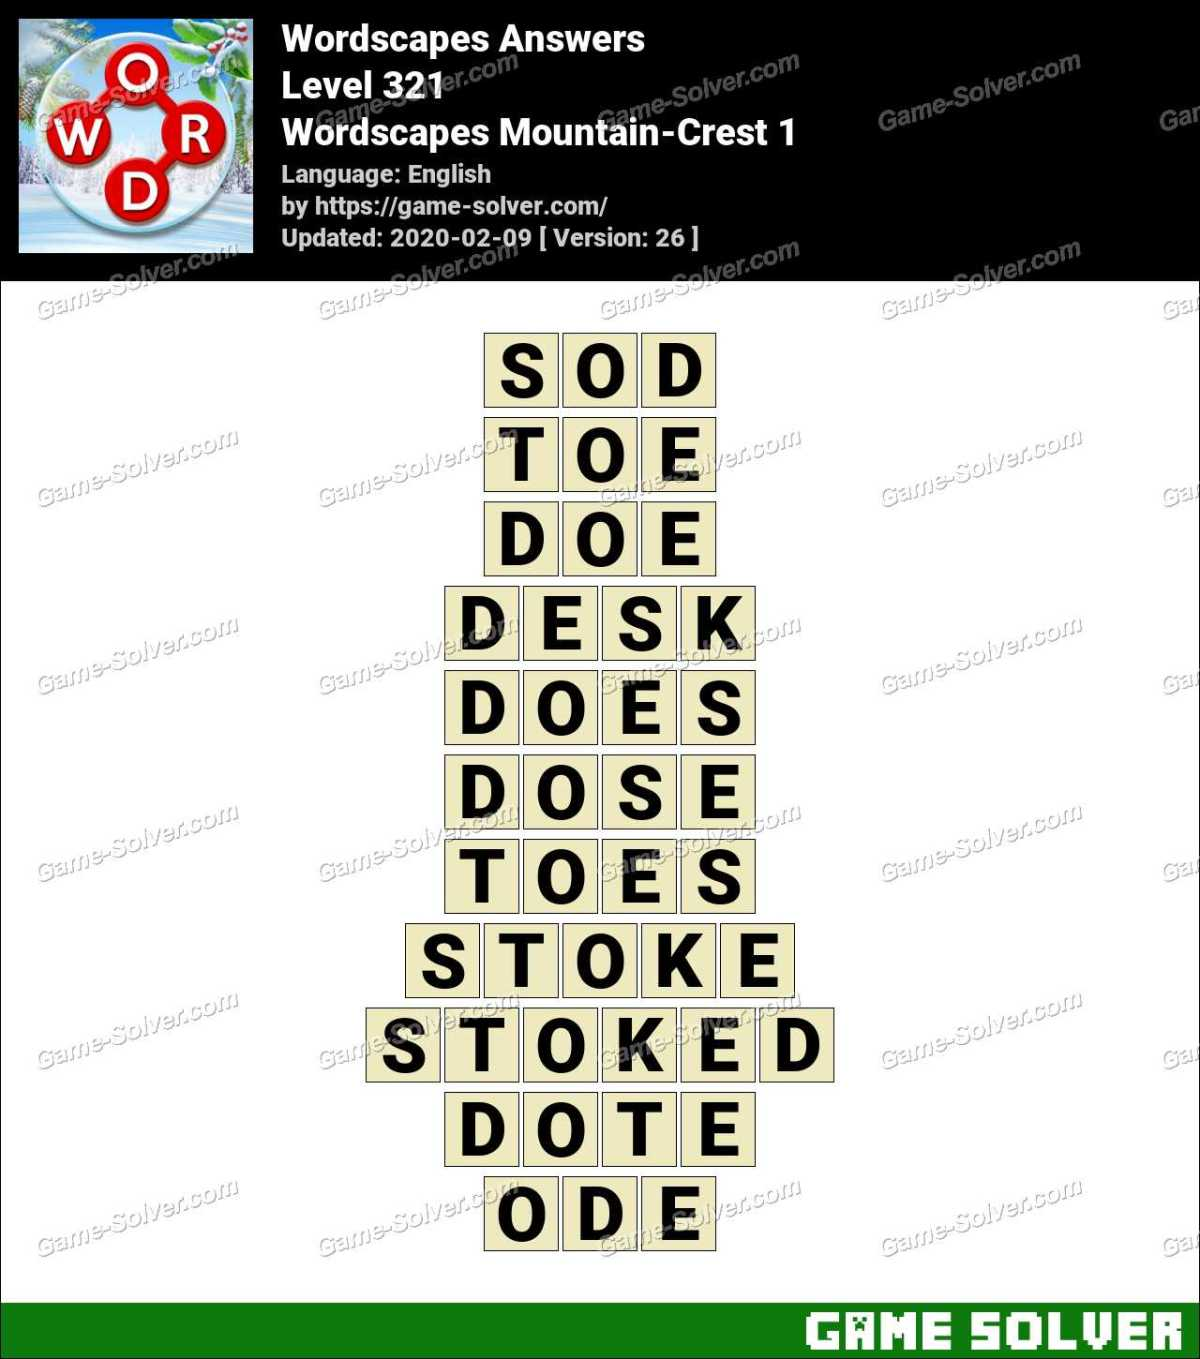 Wordscapes Mountain-Crest 1 Answers